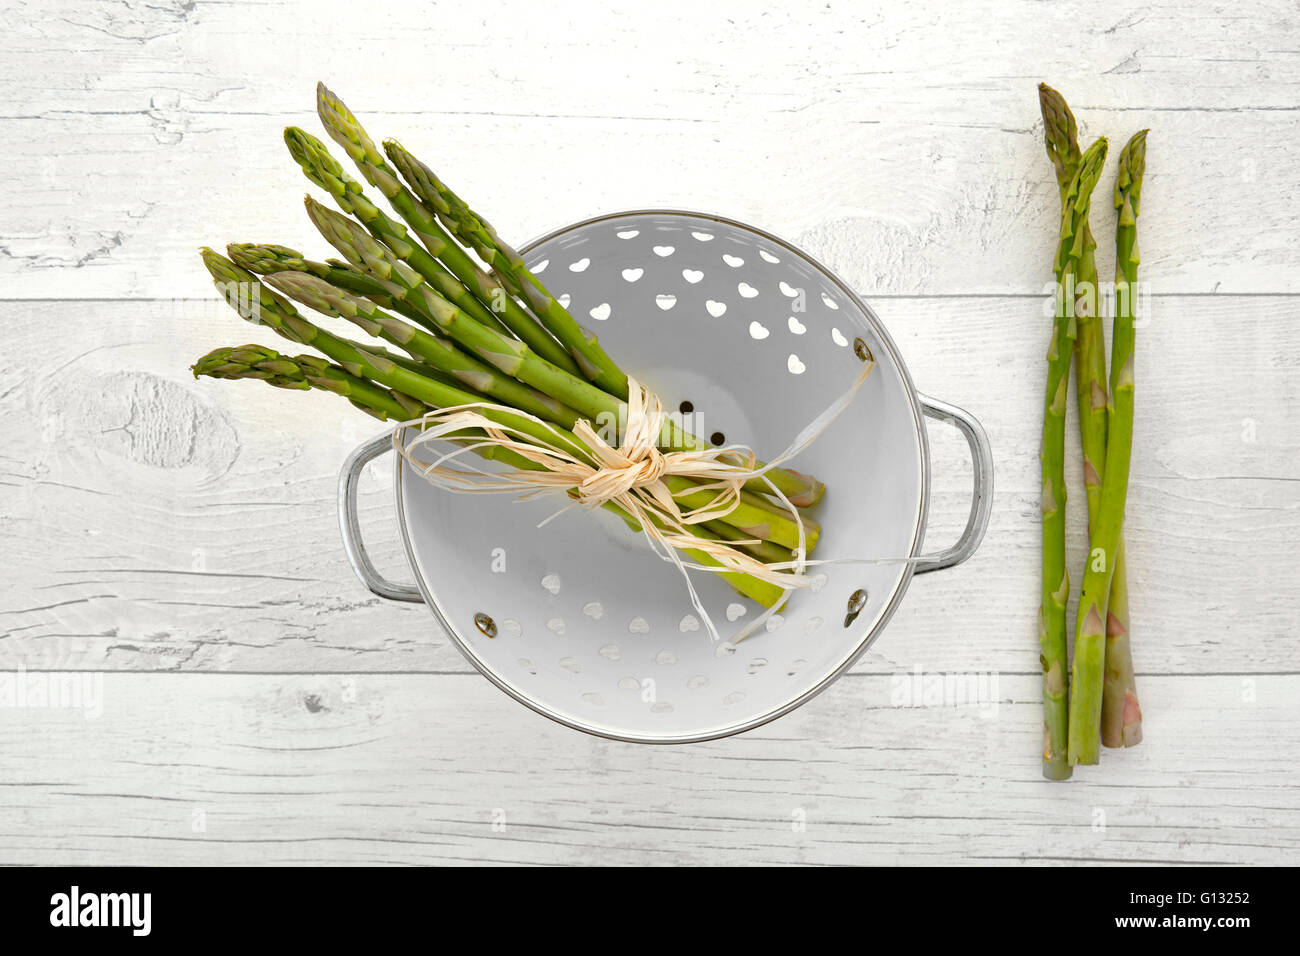 Fresh green asparagus in colander on old wooden background - Stock Image